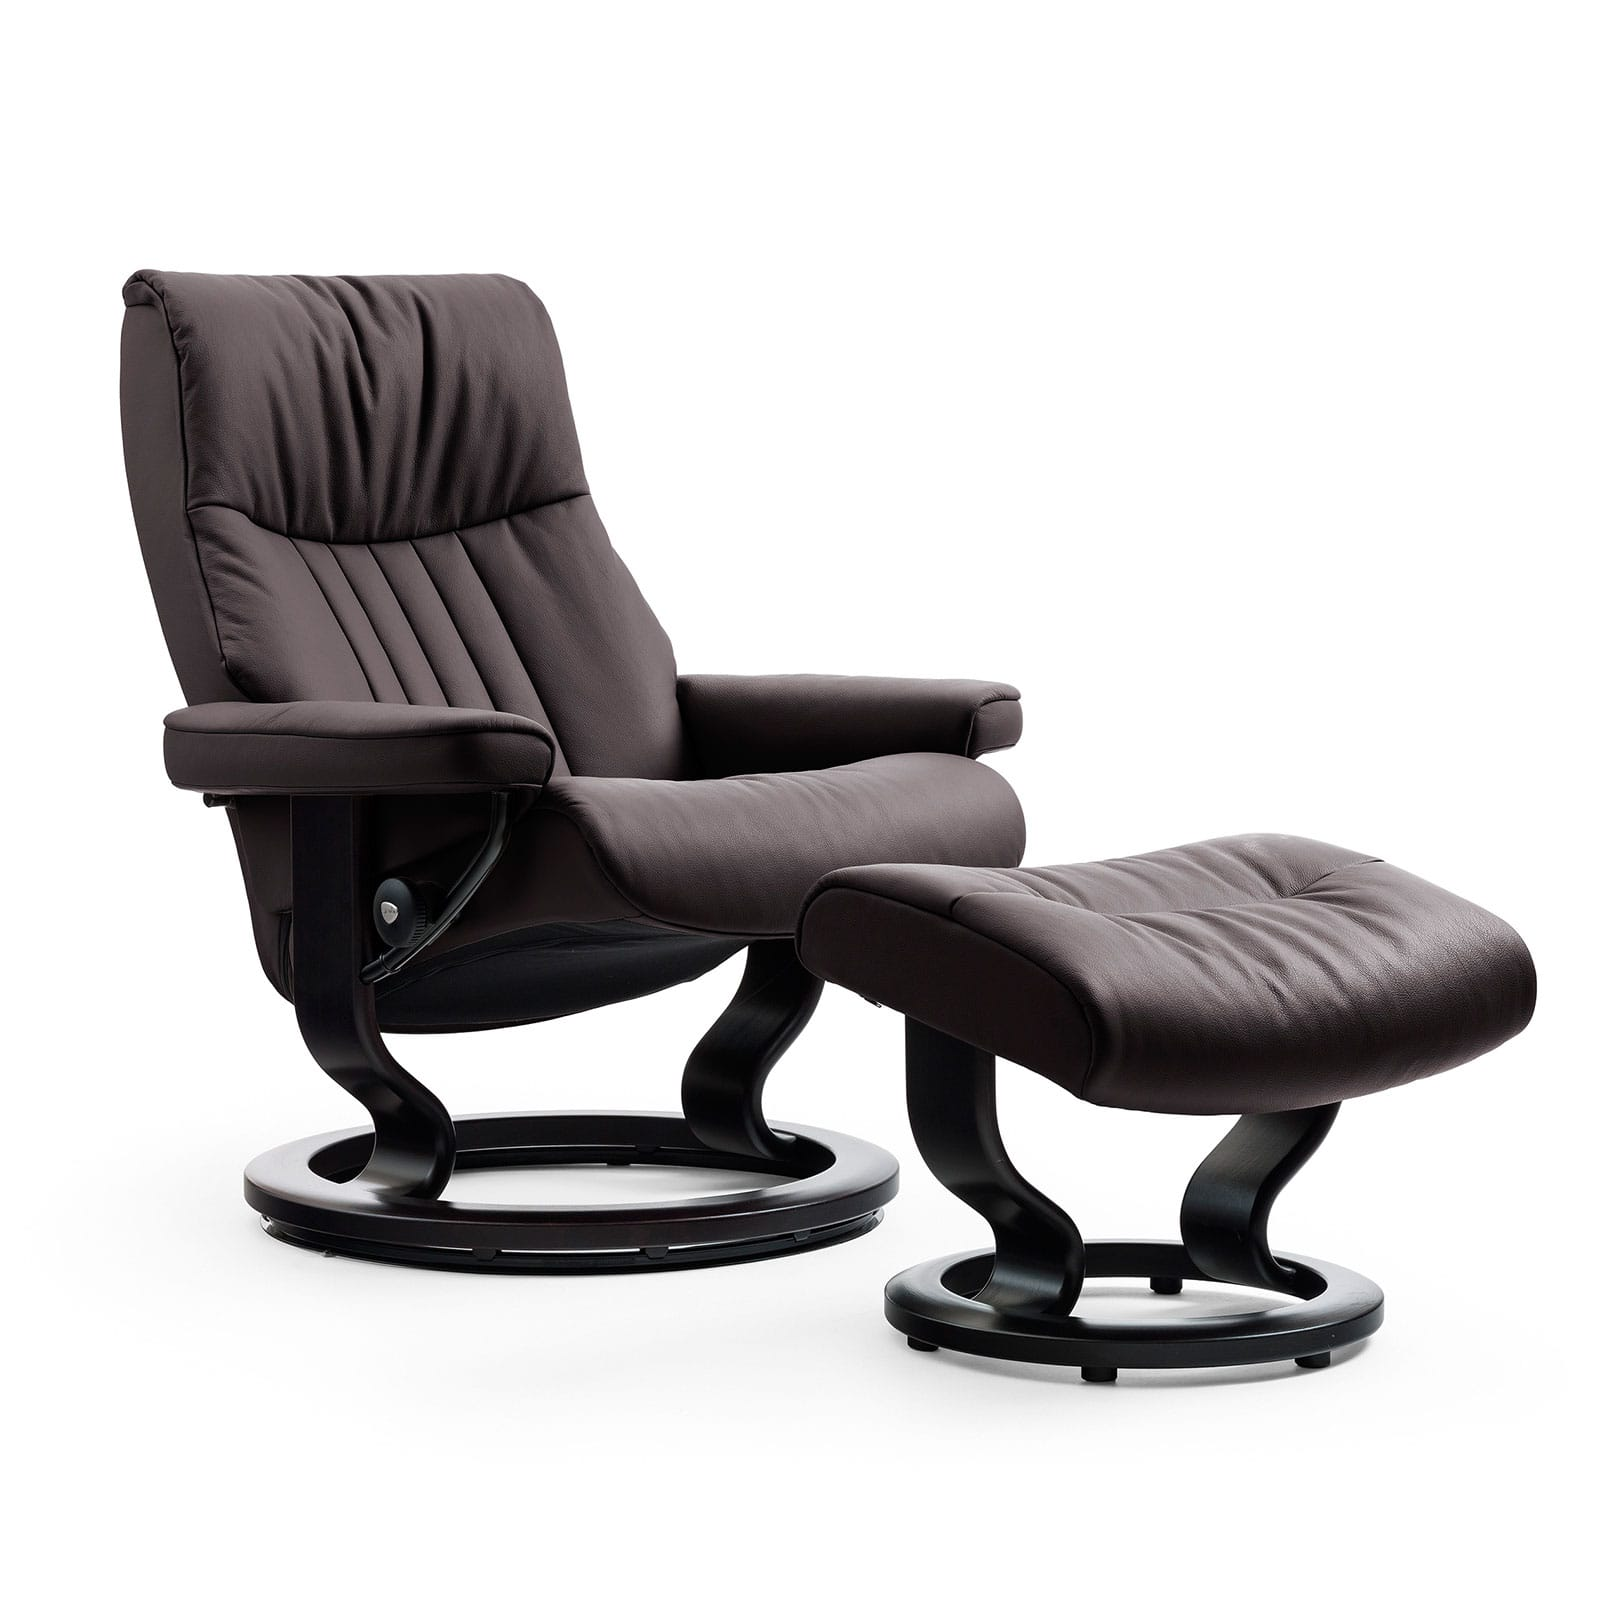 Stressless Sessel Preise Stressless Sessel Preise Finest Stressless Reno Signature